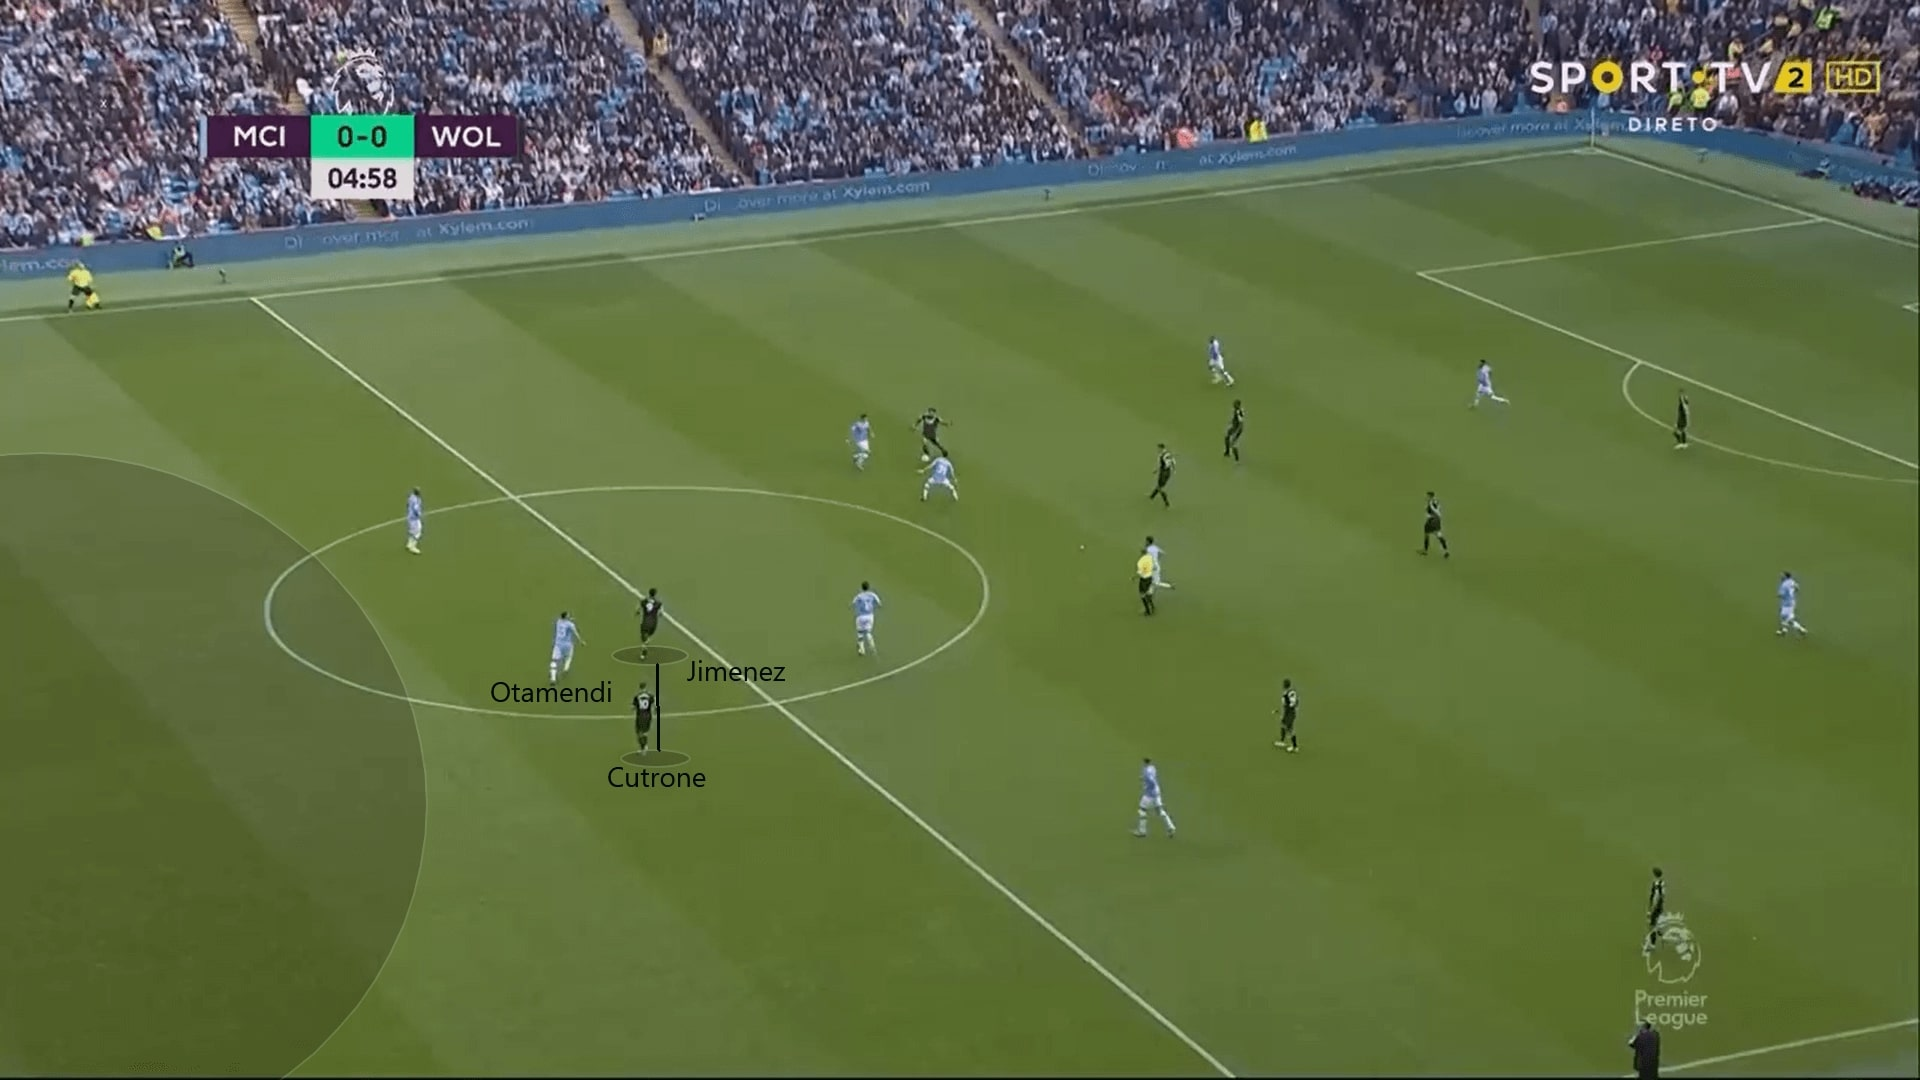 Premier League 2019/20: Manchester City vs Wolves - tactical analysis tactics